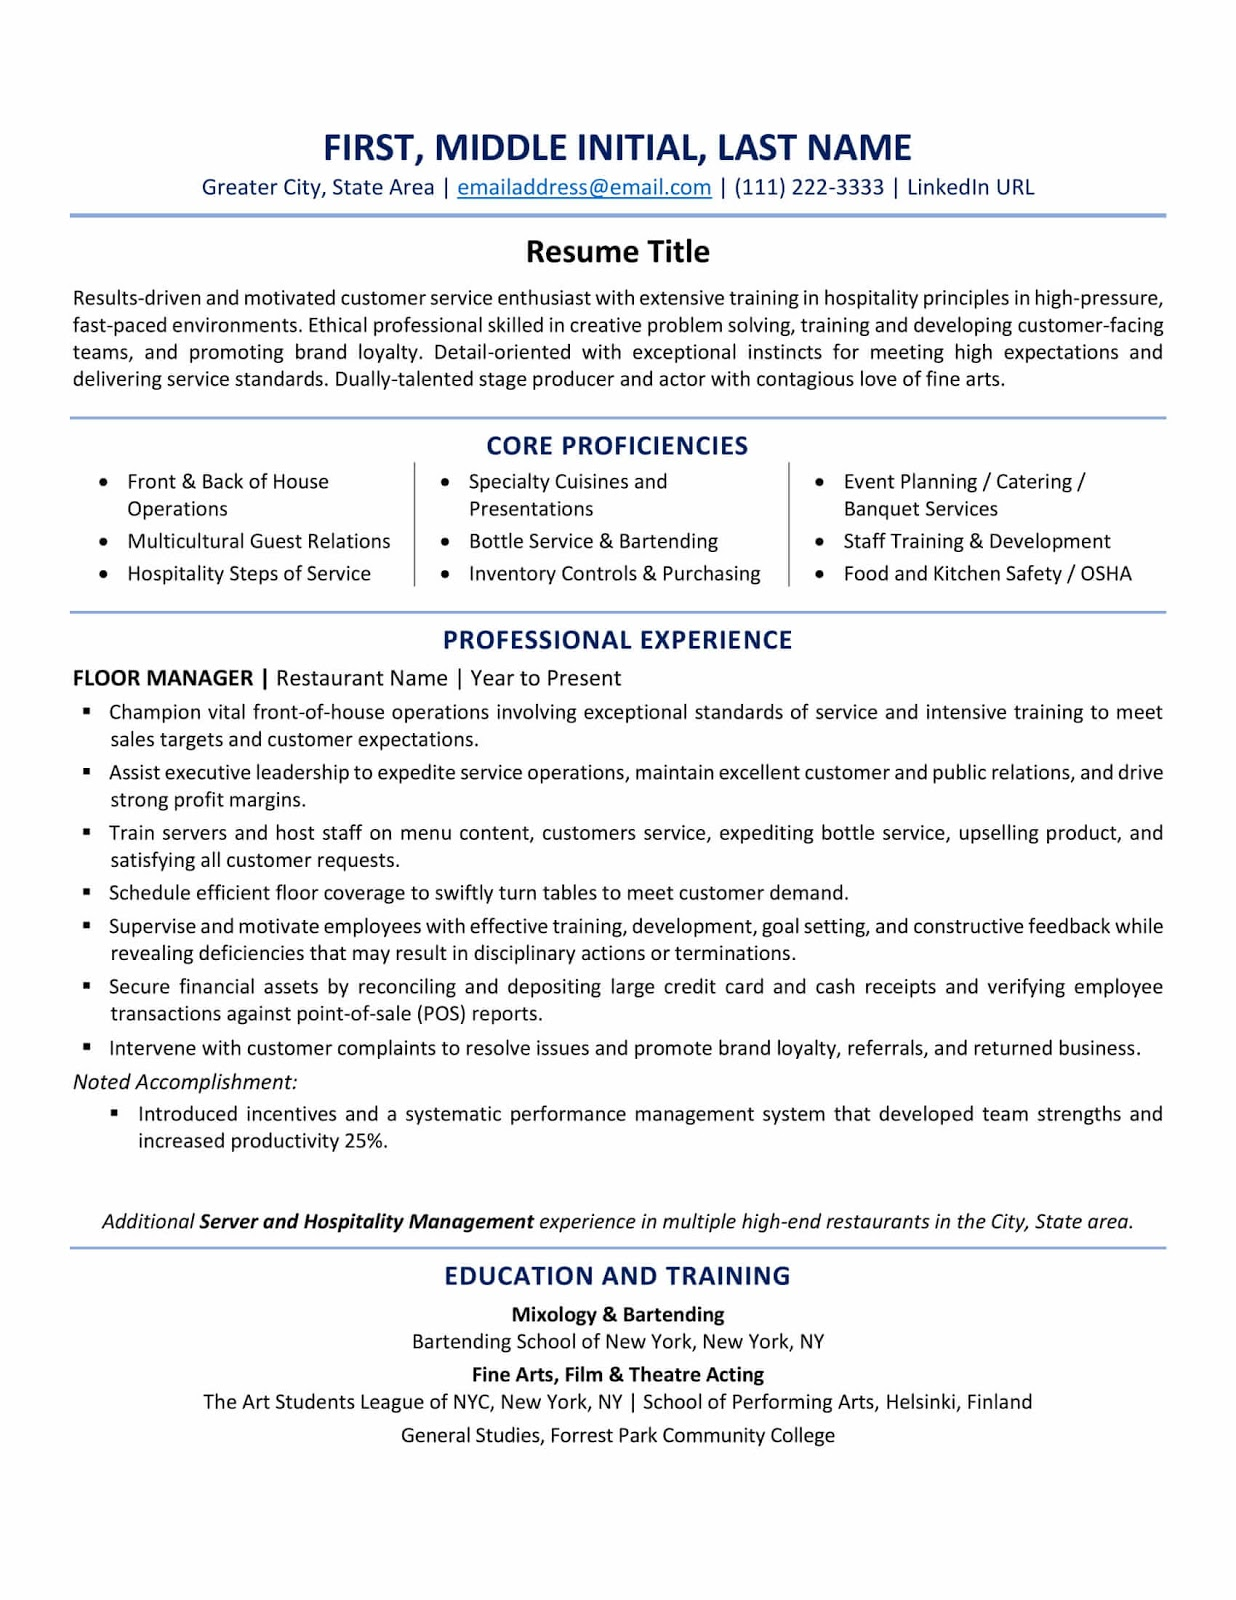 resume format best tips and examples updated sample recent college graduate bld guaynabo Resume American Resume Format Sample